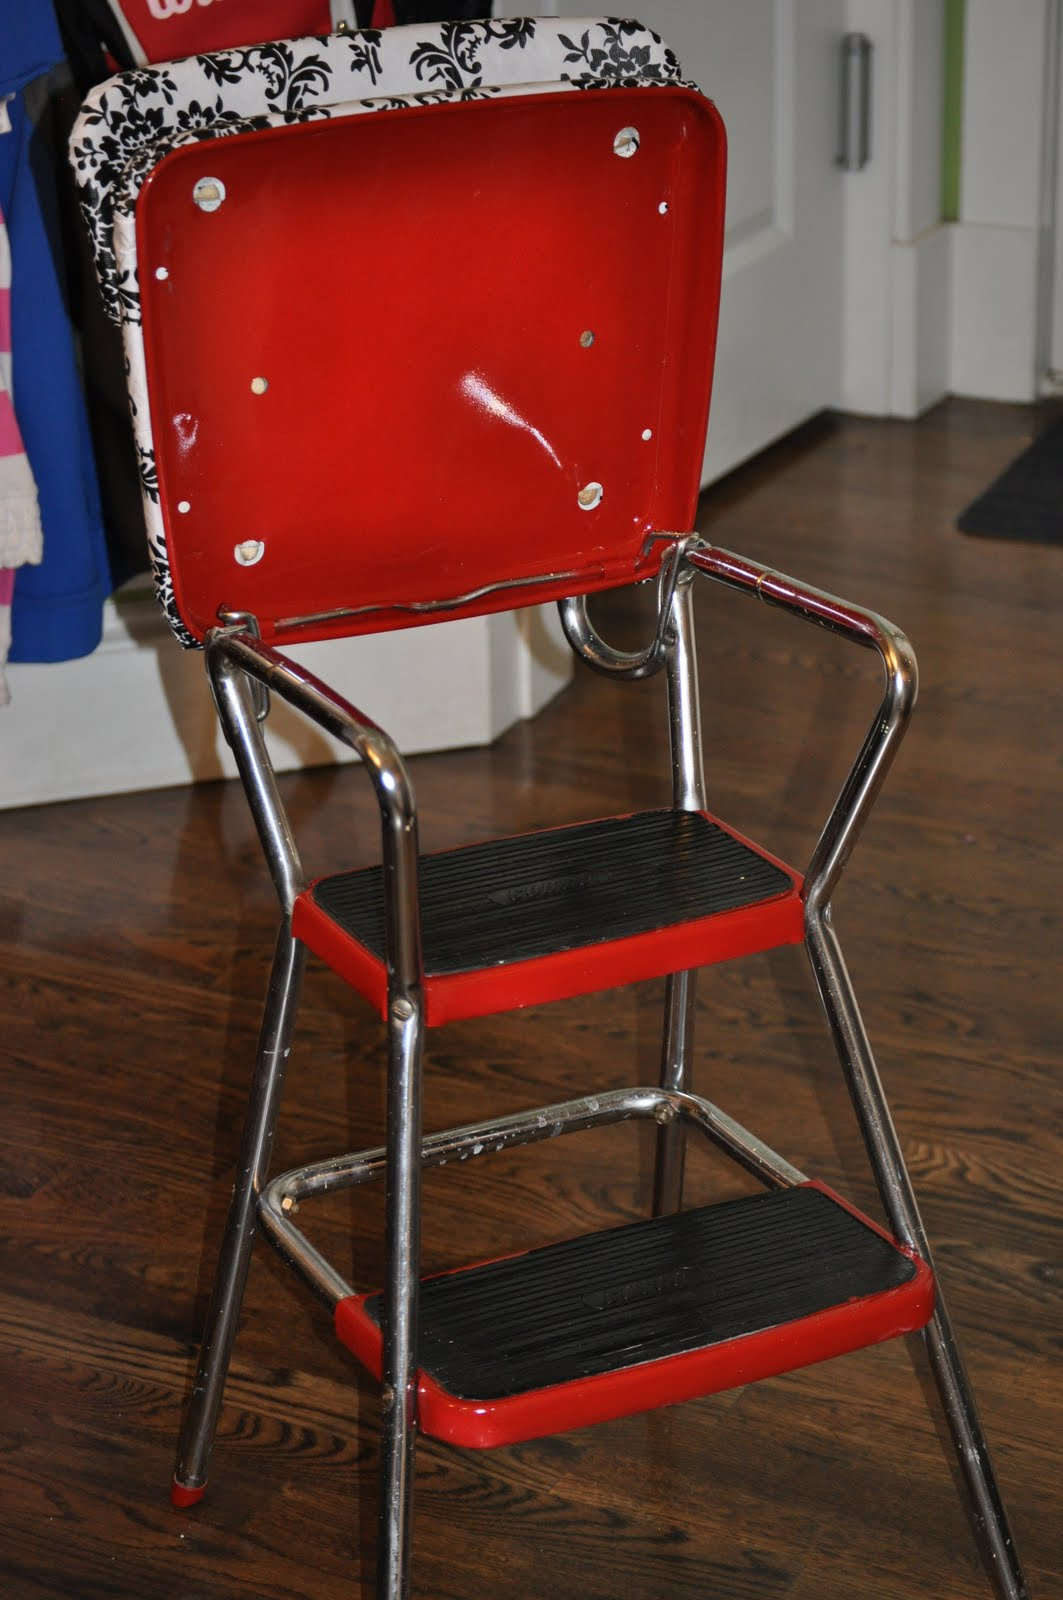 chair step stool adams mfg adirondack stacking cassandra design classic red kitchen